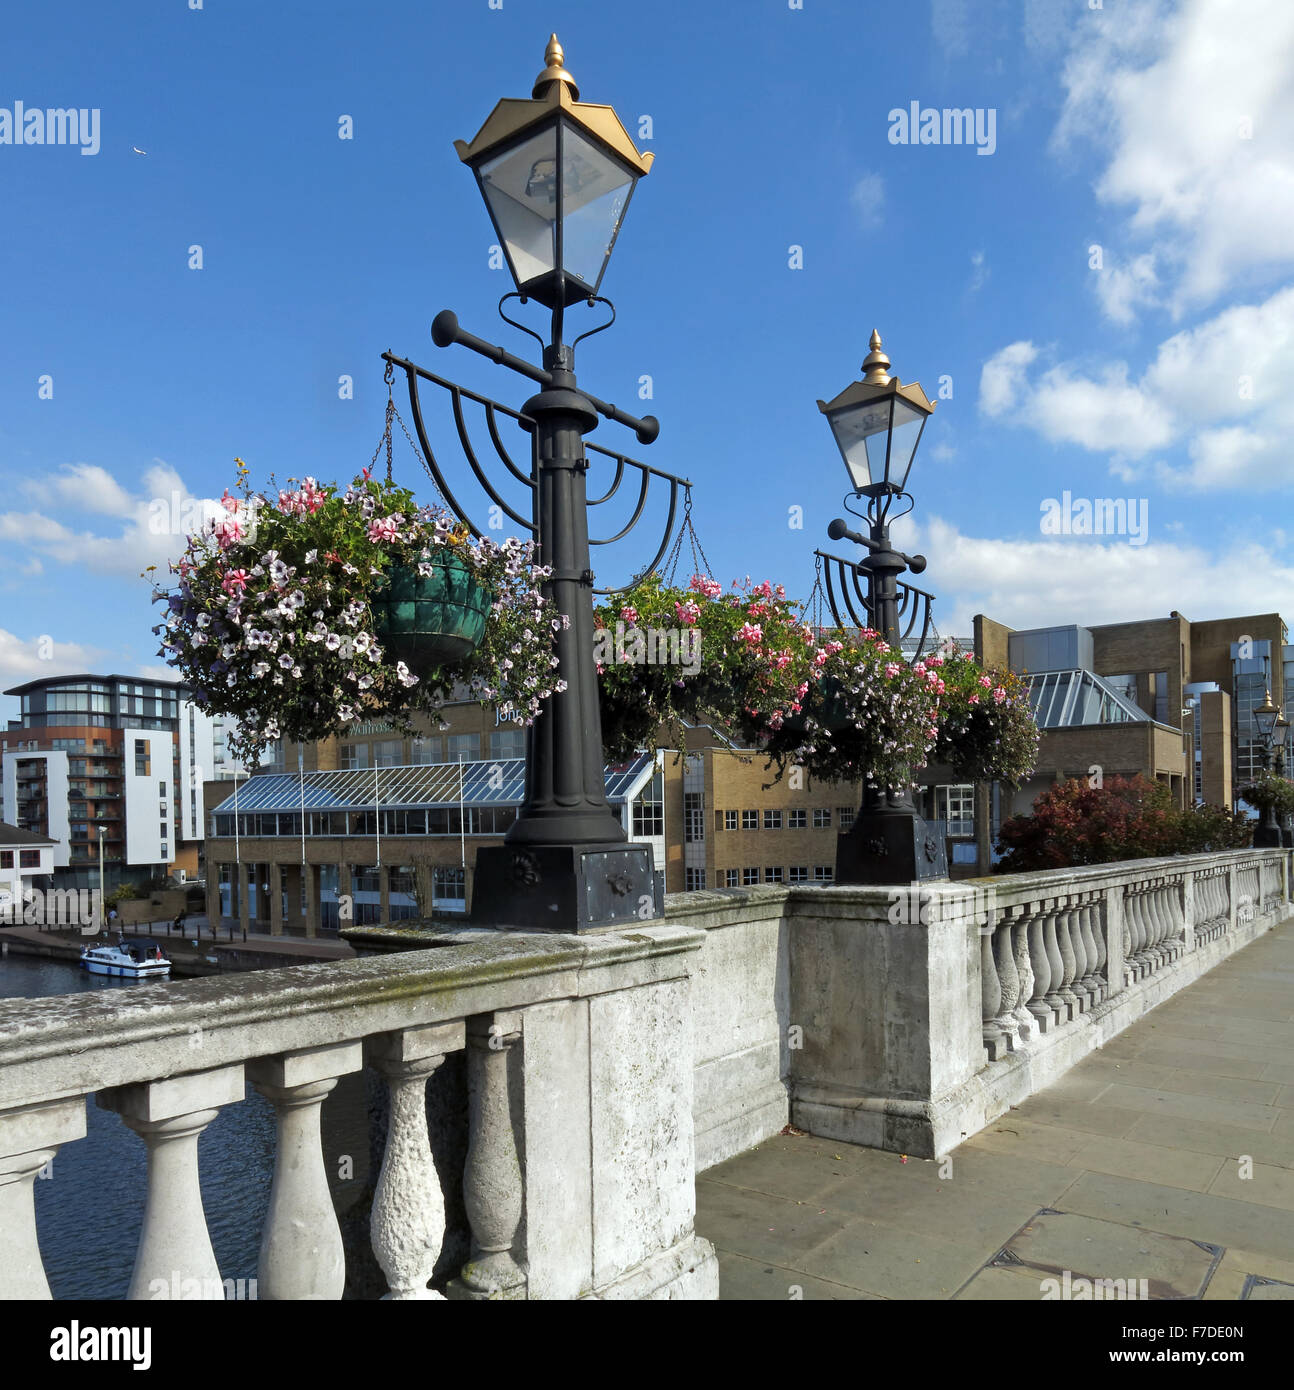 Kingston Bridge, Thames, Horsefair, London,England, UK, KT1 - Stock Image